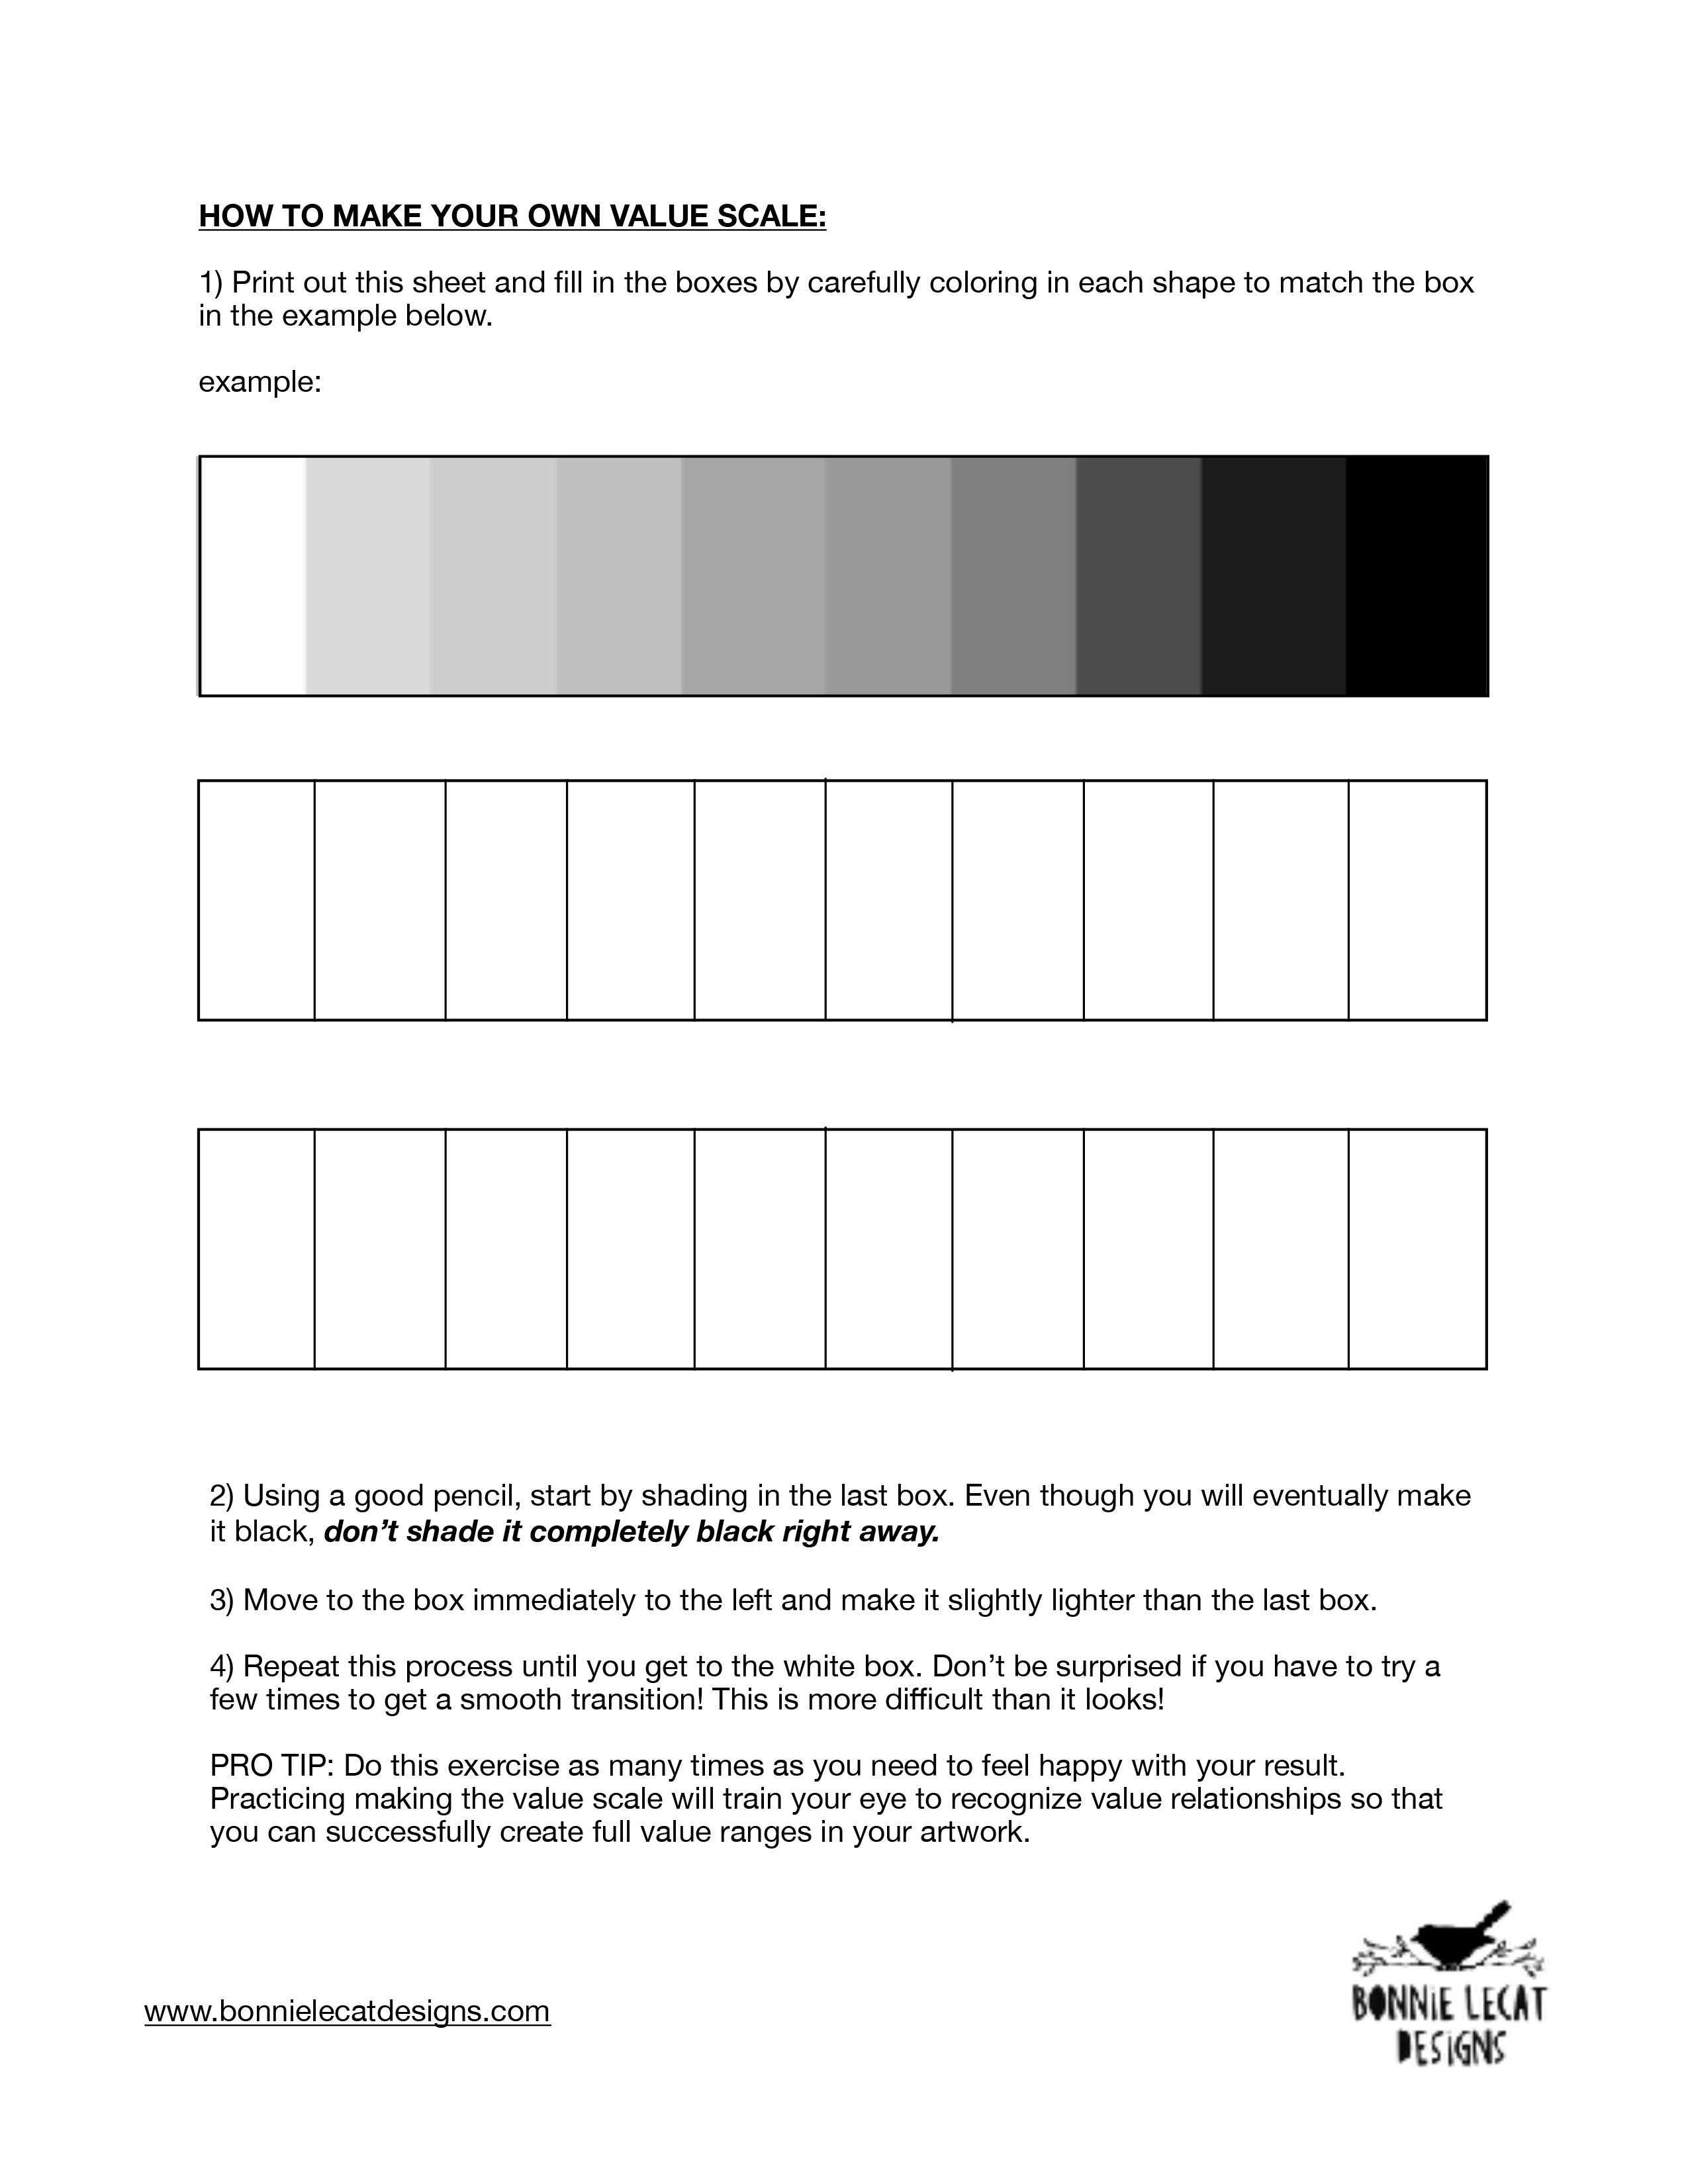 value scale worksheet   Illustration, Art Prints and Gifts ...